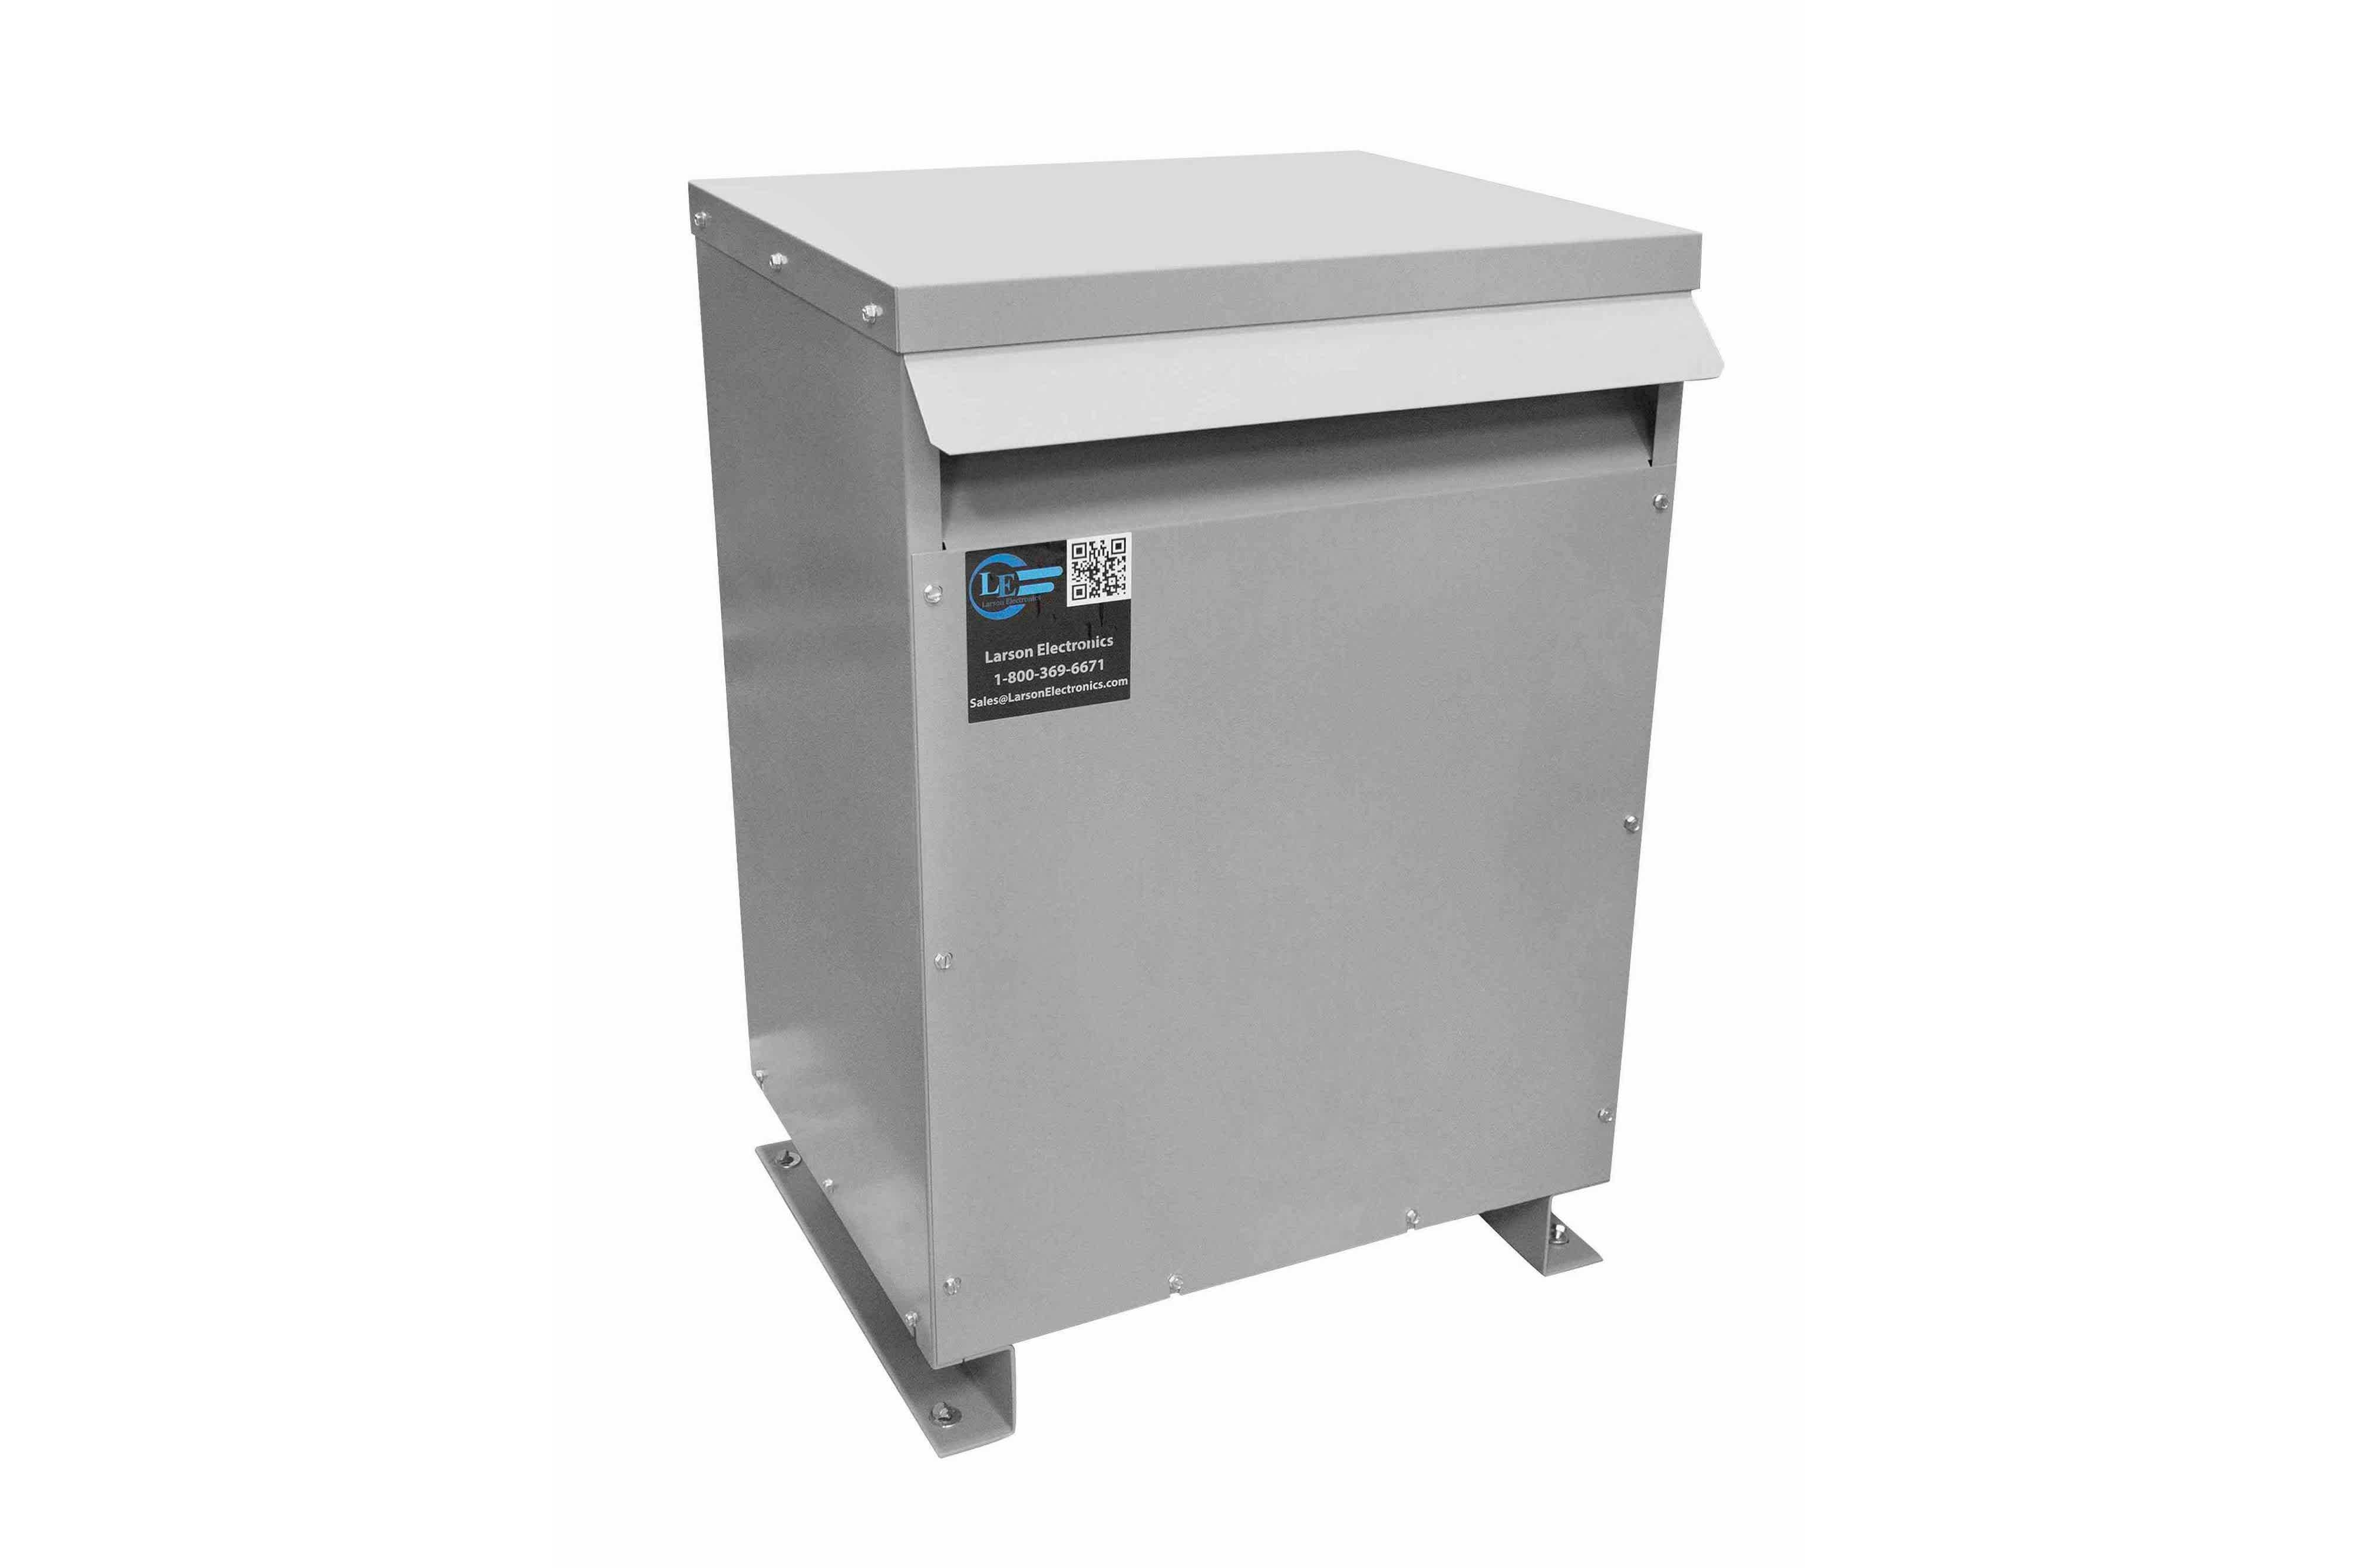 30 kVA 3PH Isolation Transformer, 240V Delta Primary, 480V Delta Secondary, N3R, Ventilated, 60 Hz